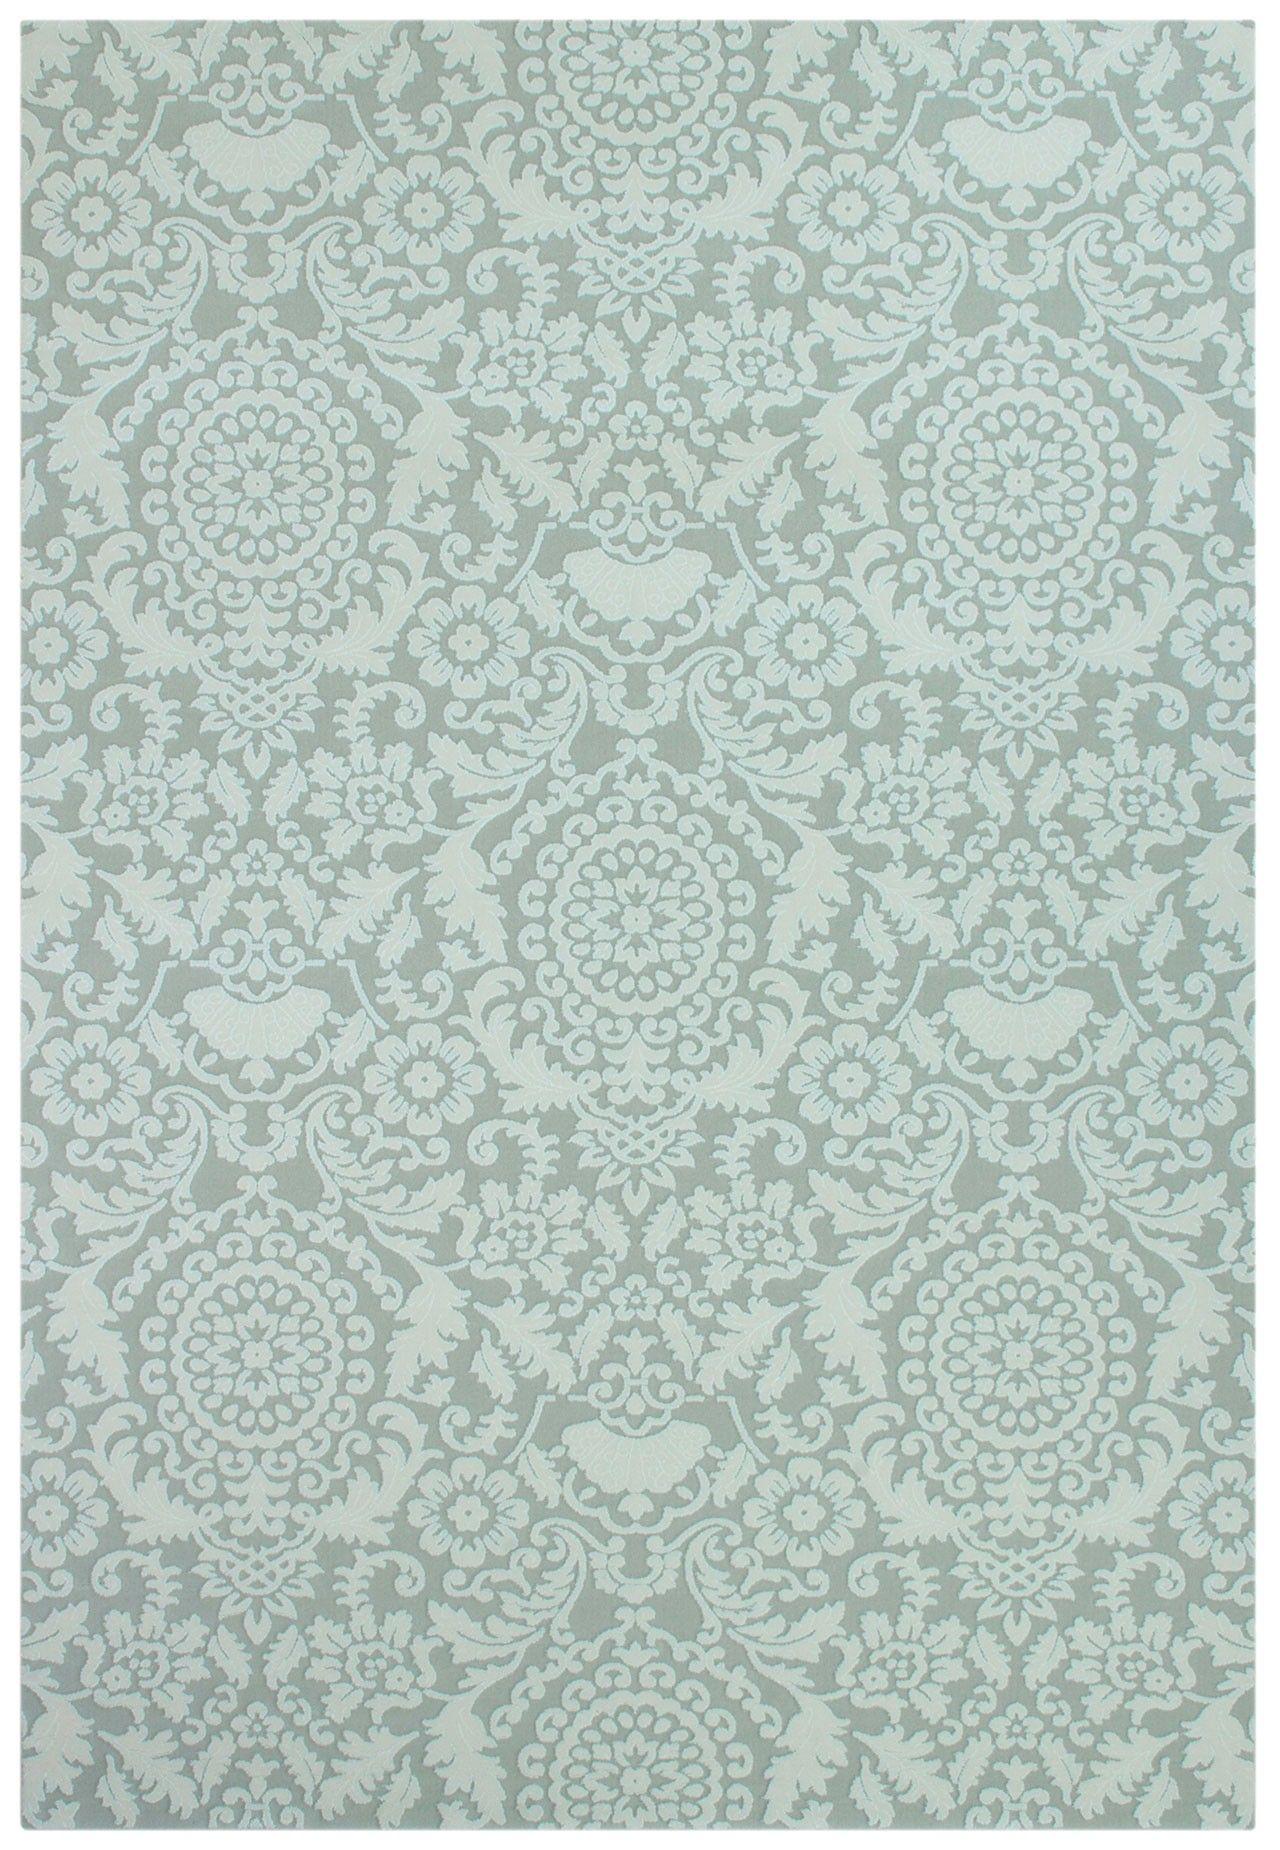 Teppich Wool Comfort Türkis Prato 8016 Light Green Teppich Carpet Orient Bordüren